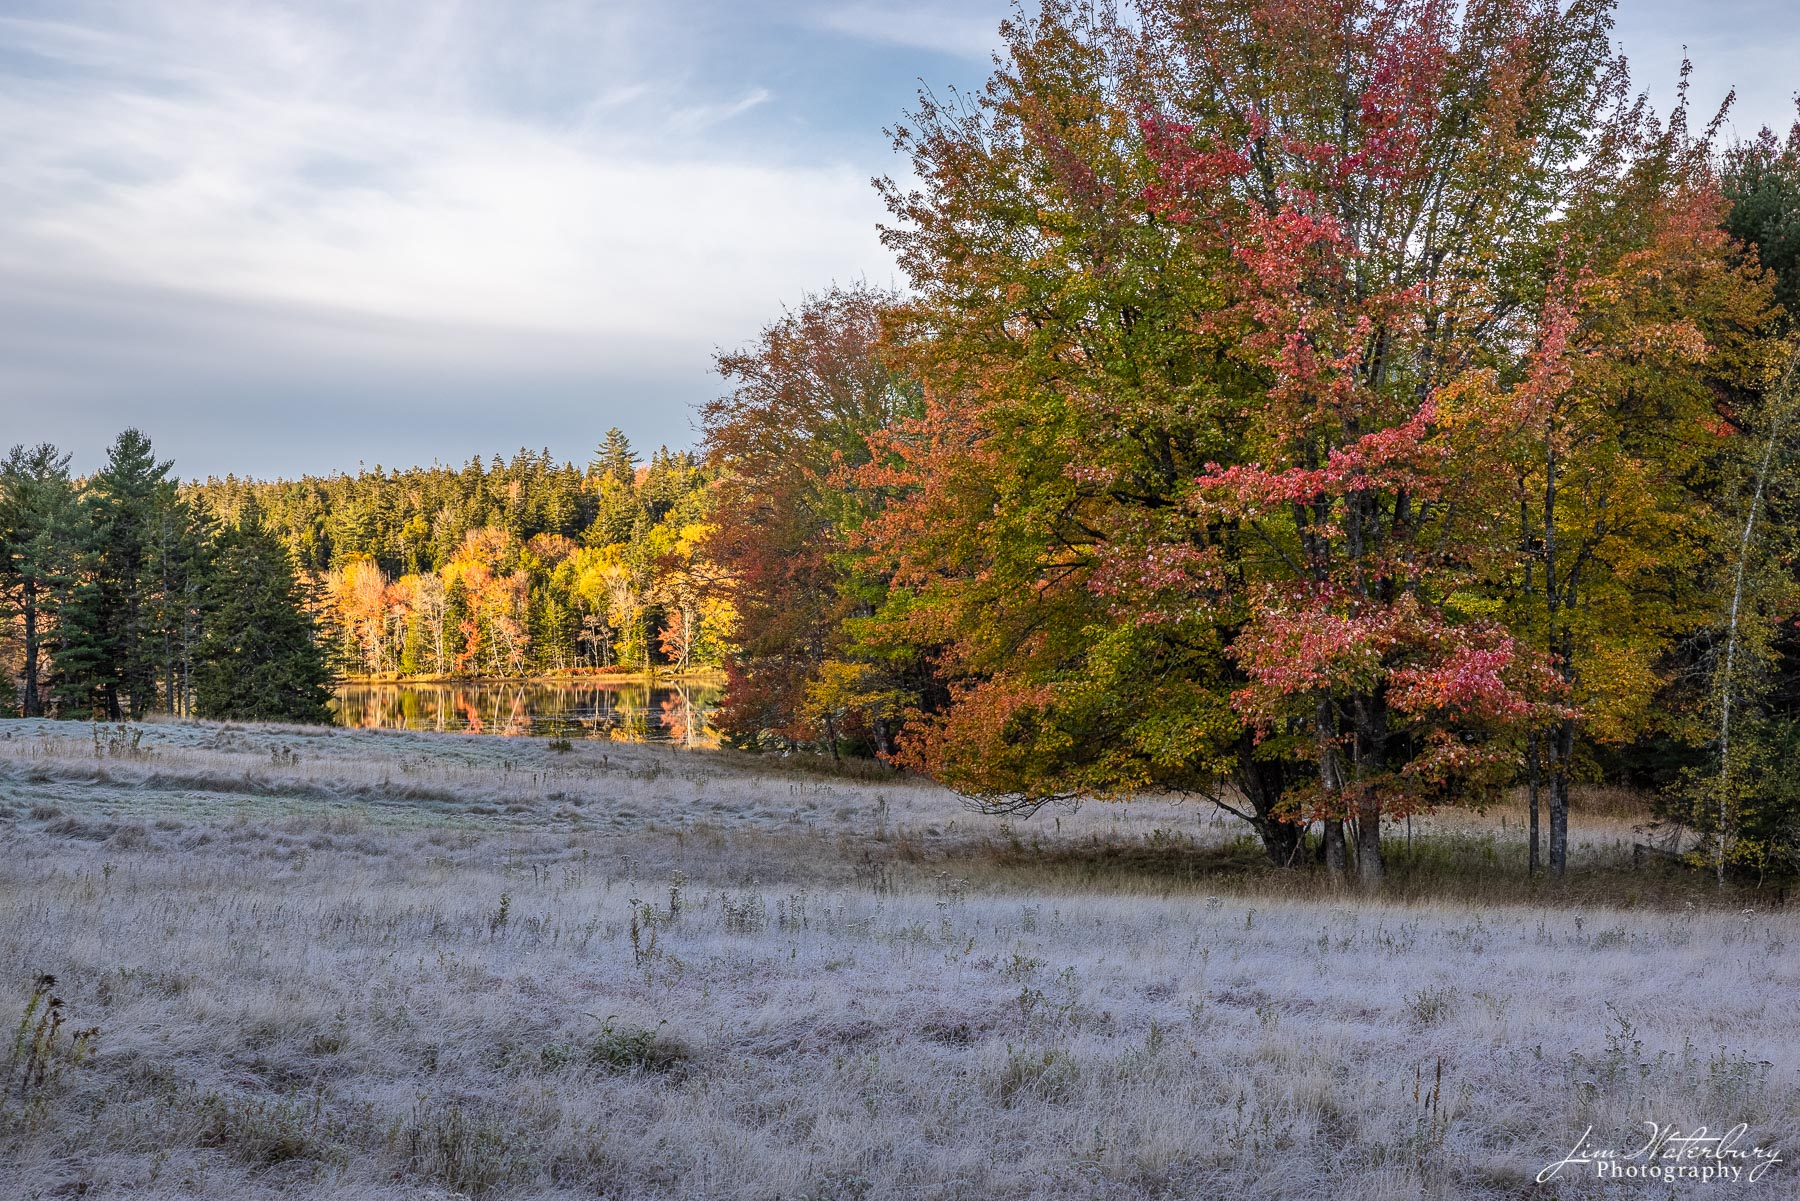 A frost-covered meadow leads down to the waters of Little Long Pond, and the fall foliage behind.